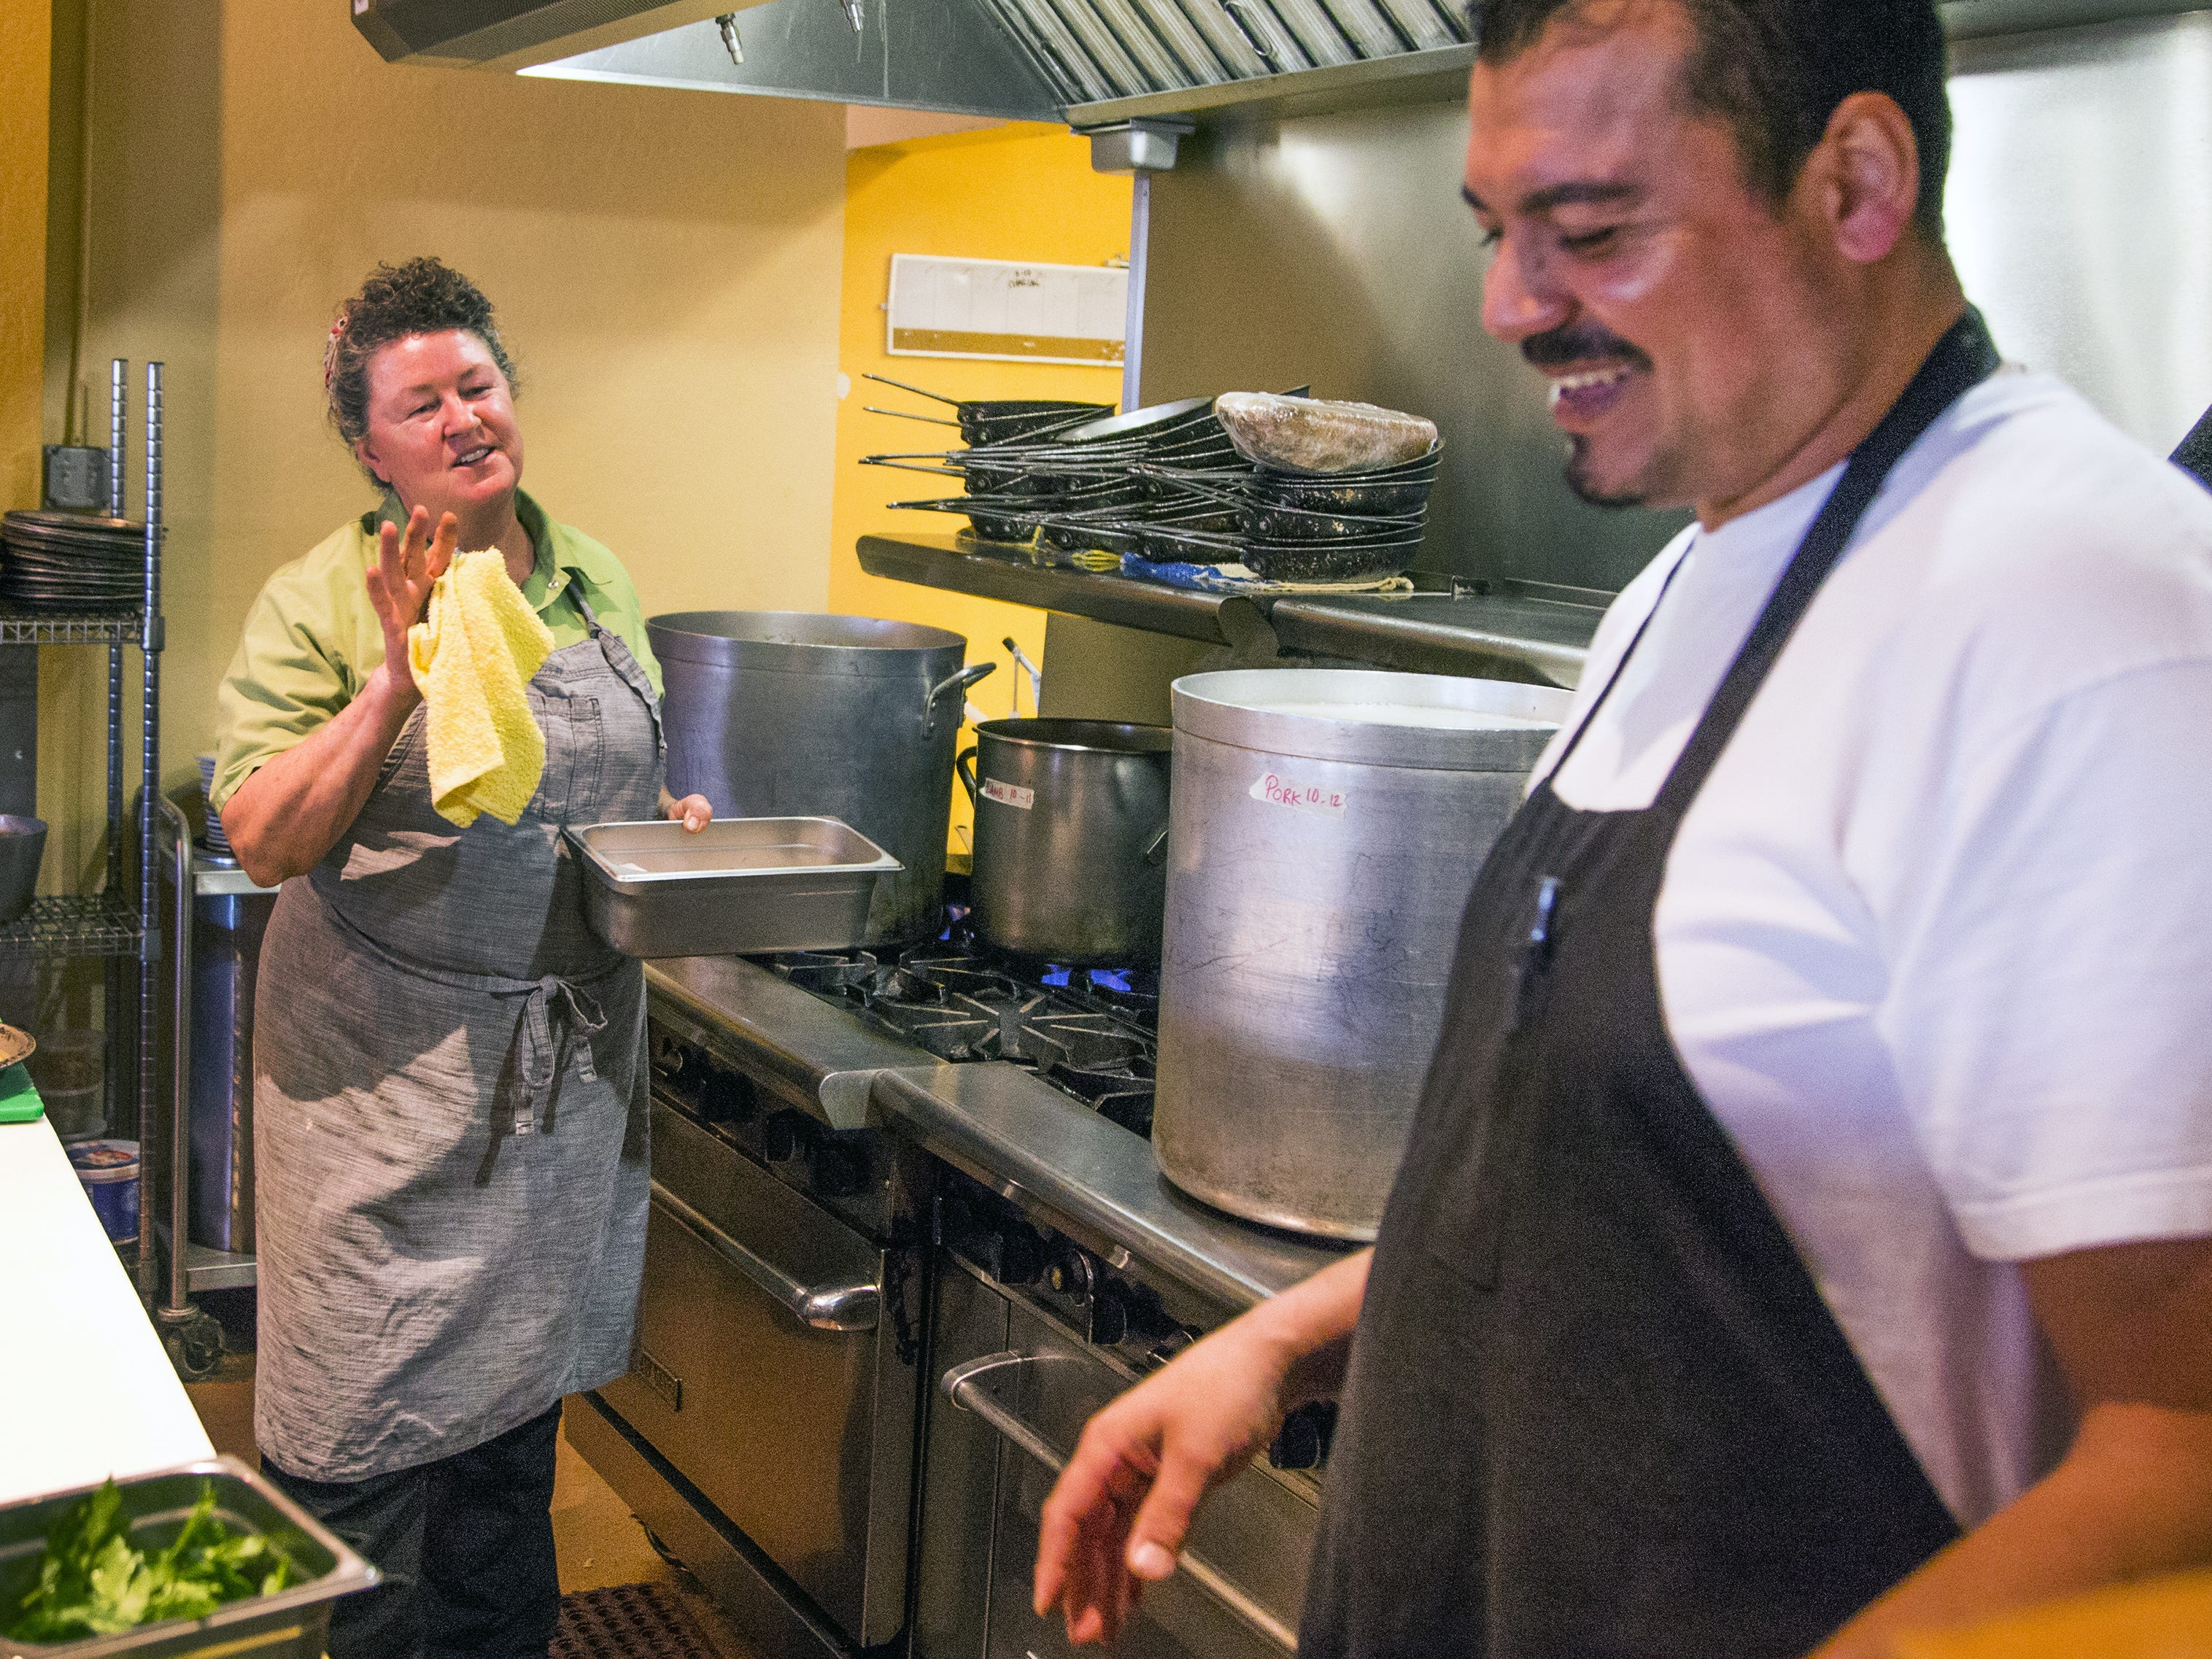 Chrysa Robertson works with cook Gregory Soto, right, in the kitchen of her restaurant, Rancho Pinot, in Scottsdale, Tuesday, Oct. 16, 2018.